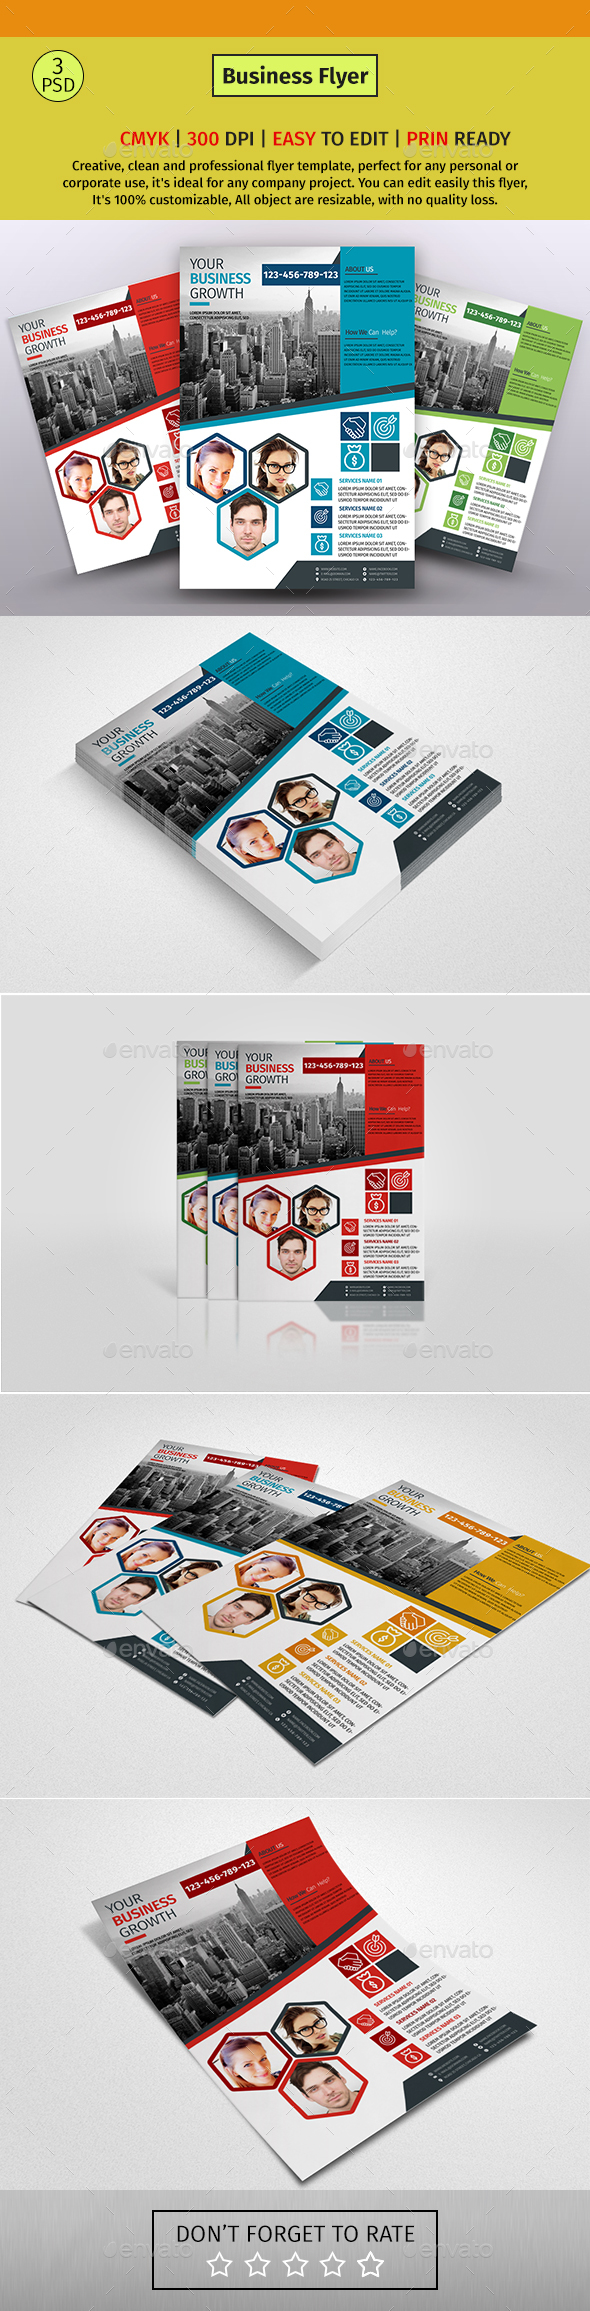 A4 Corporate Business Flyer #65 - Corporate Flyers